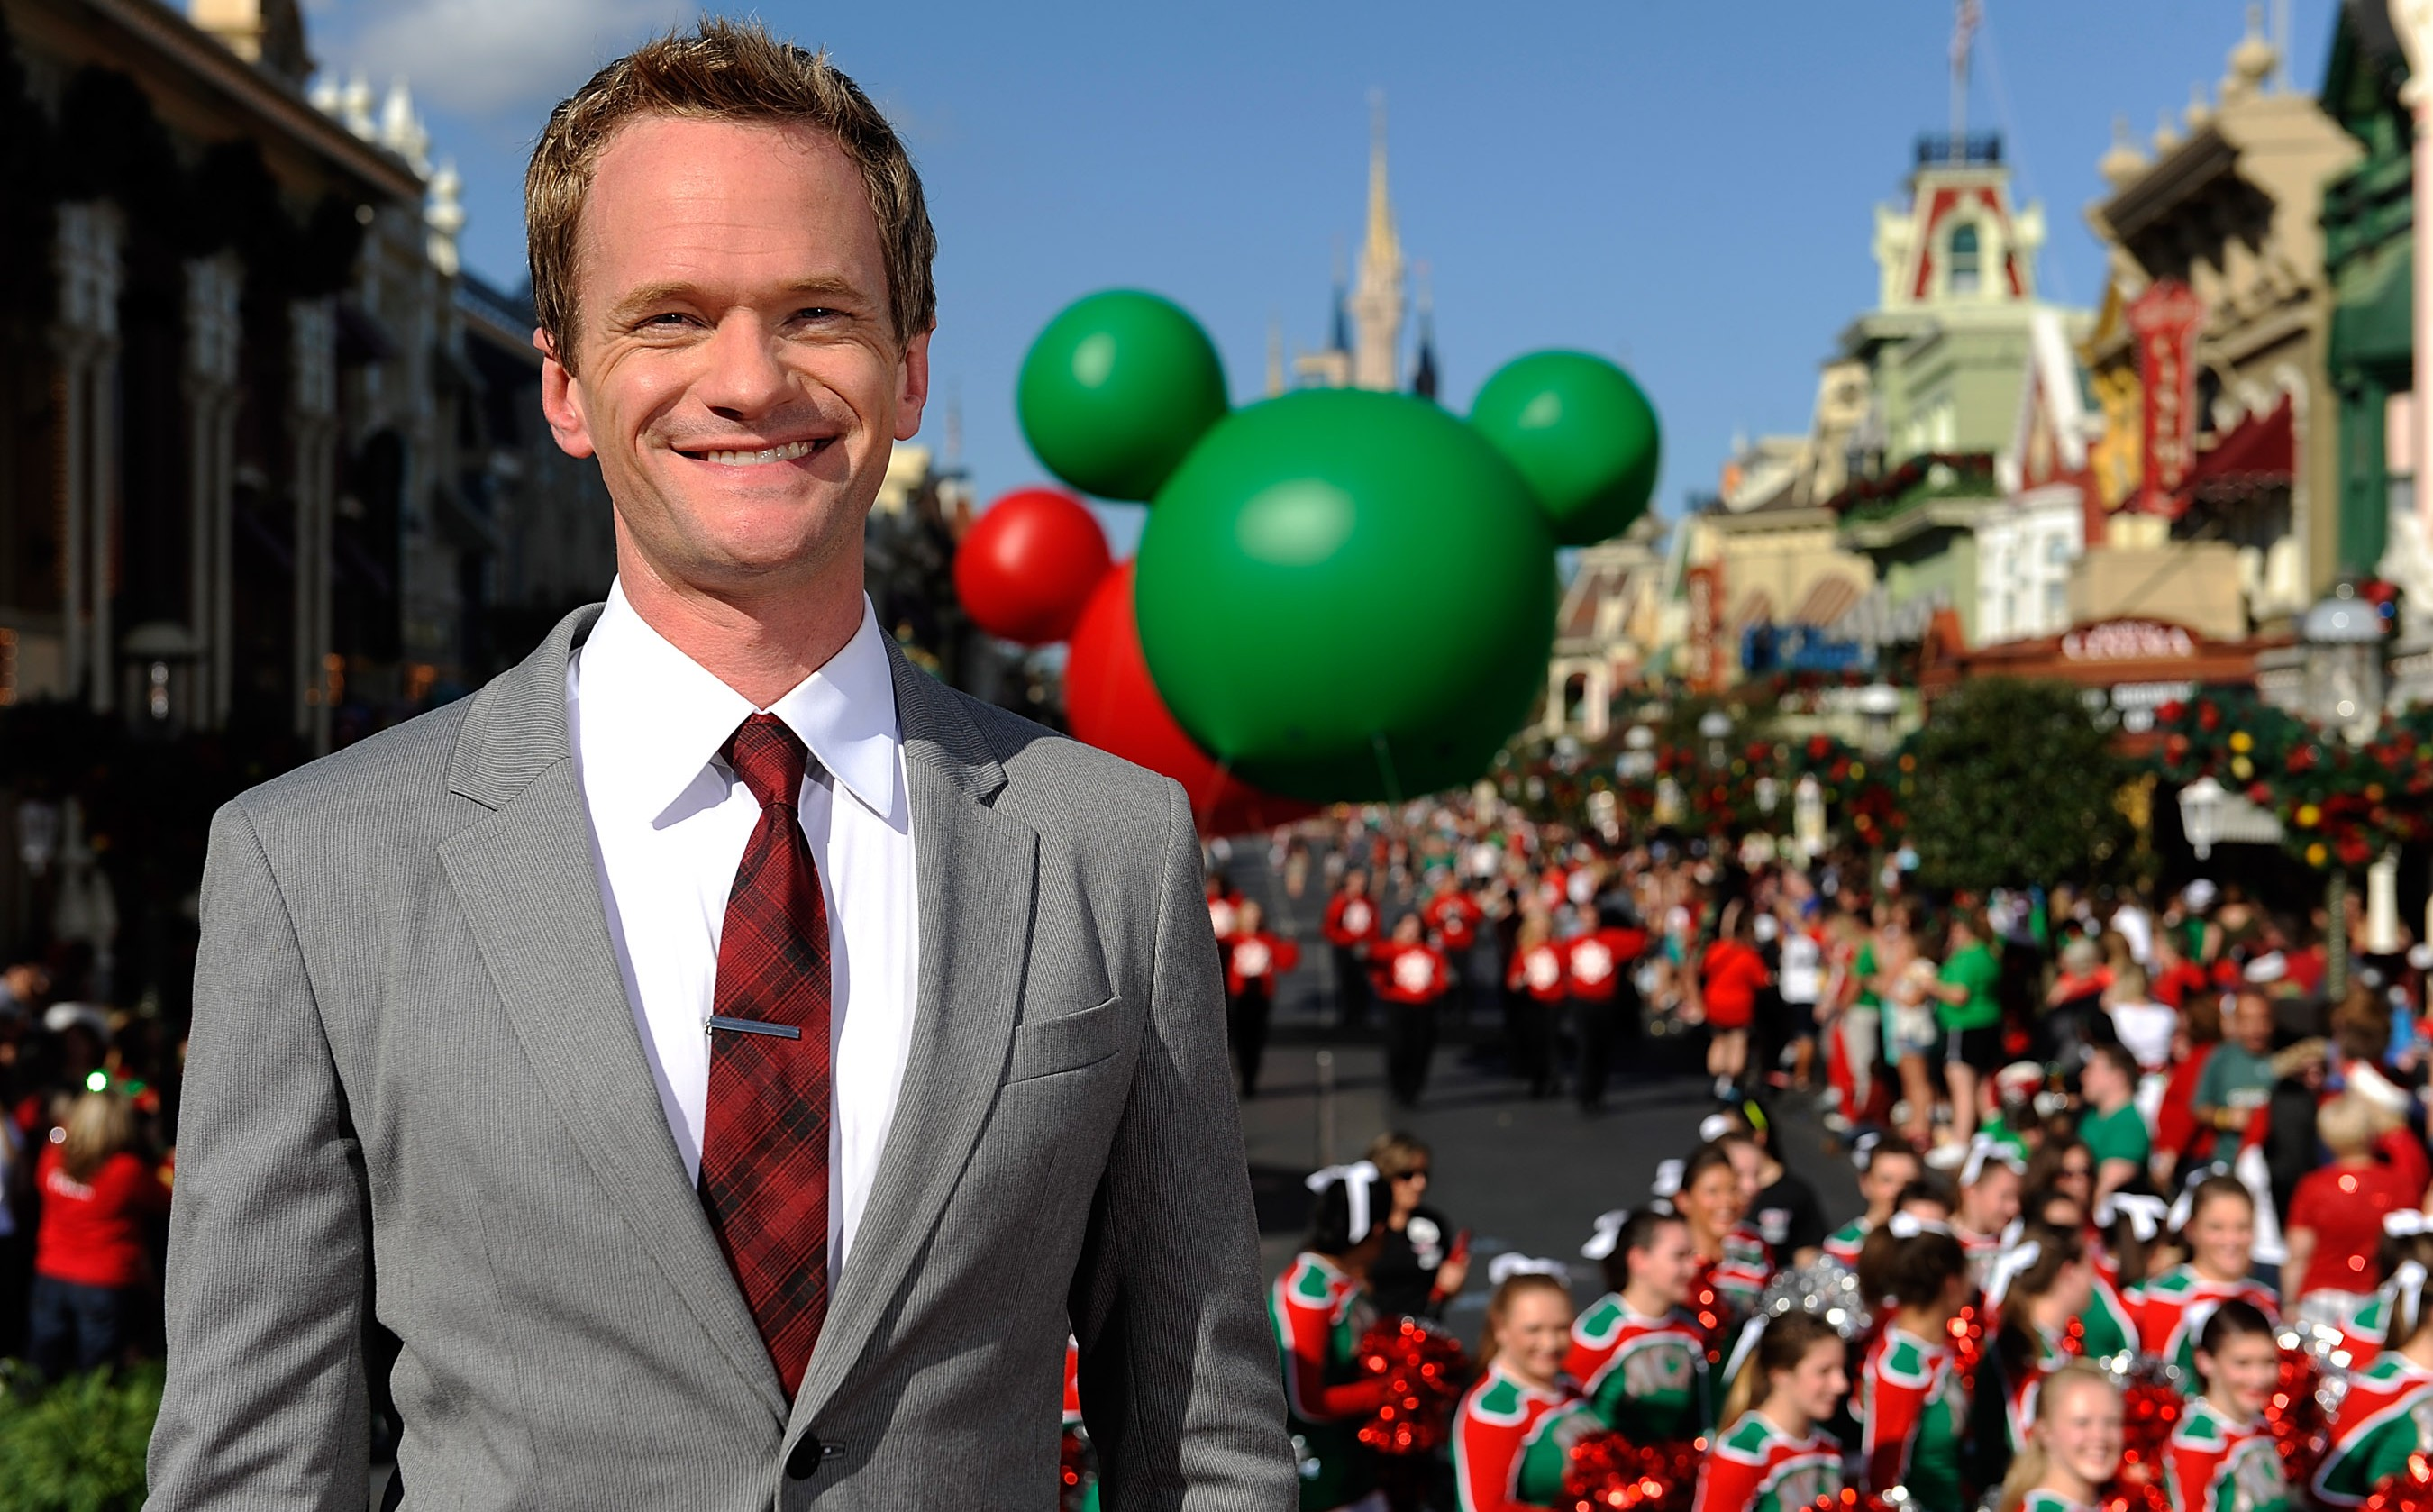 Tune in Dec. 25 for the 30th annual Disney Parks Christmas Day Parade